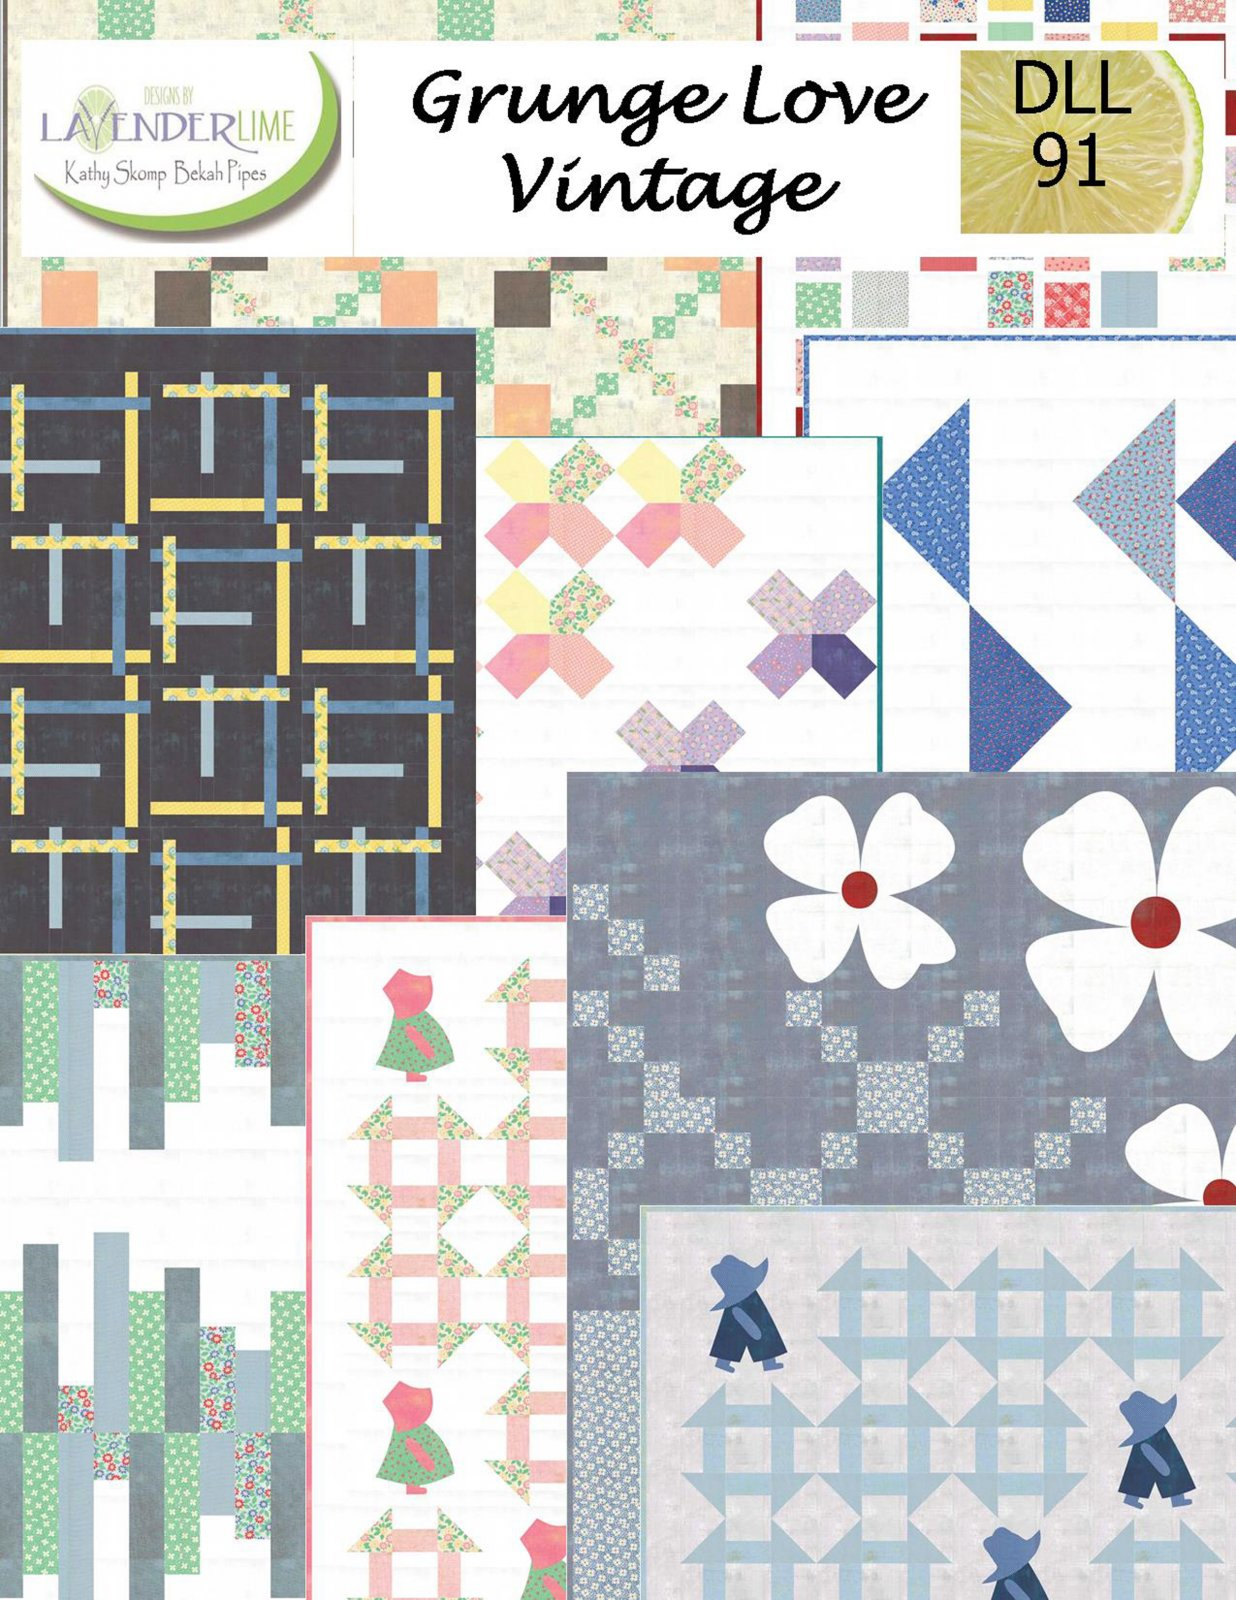 Grunge Love Vintage PDF Download